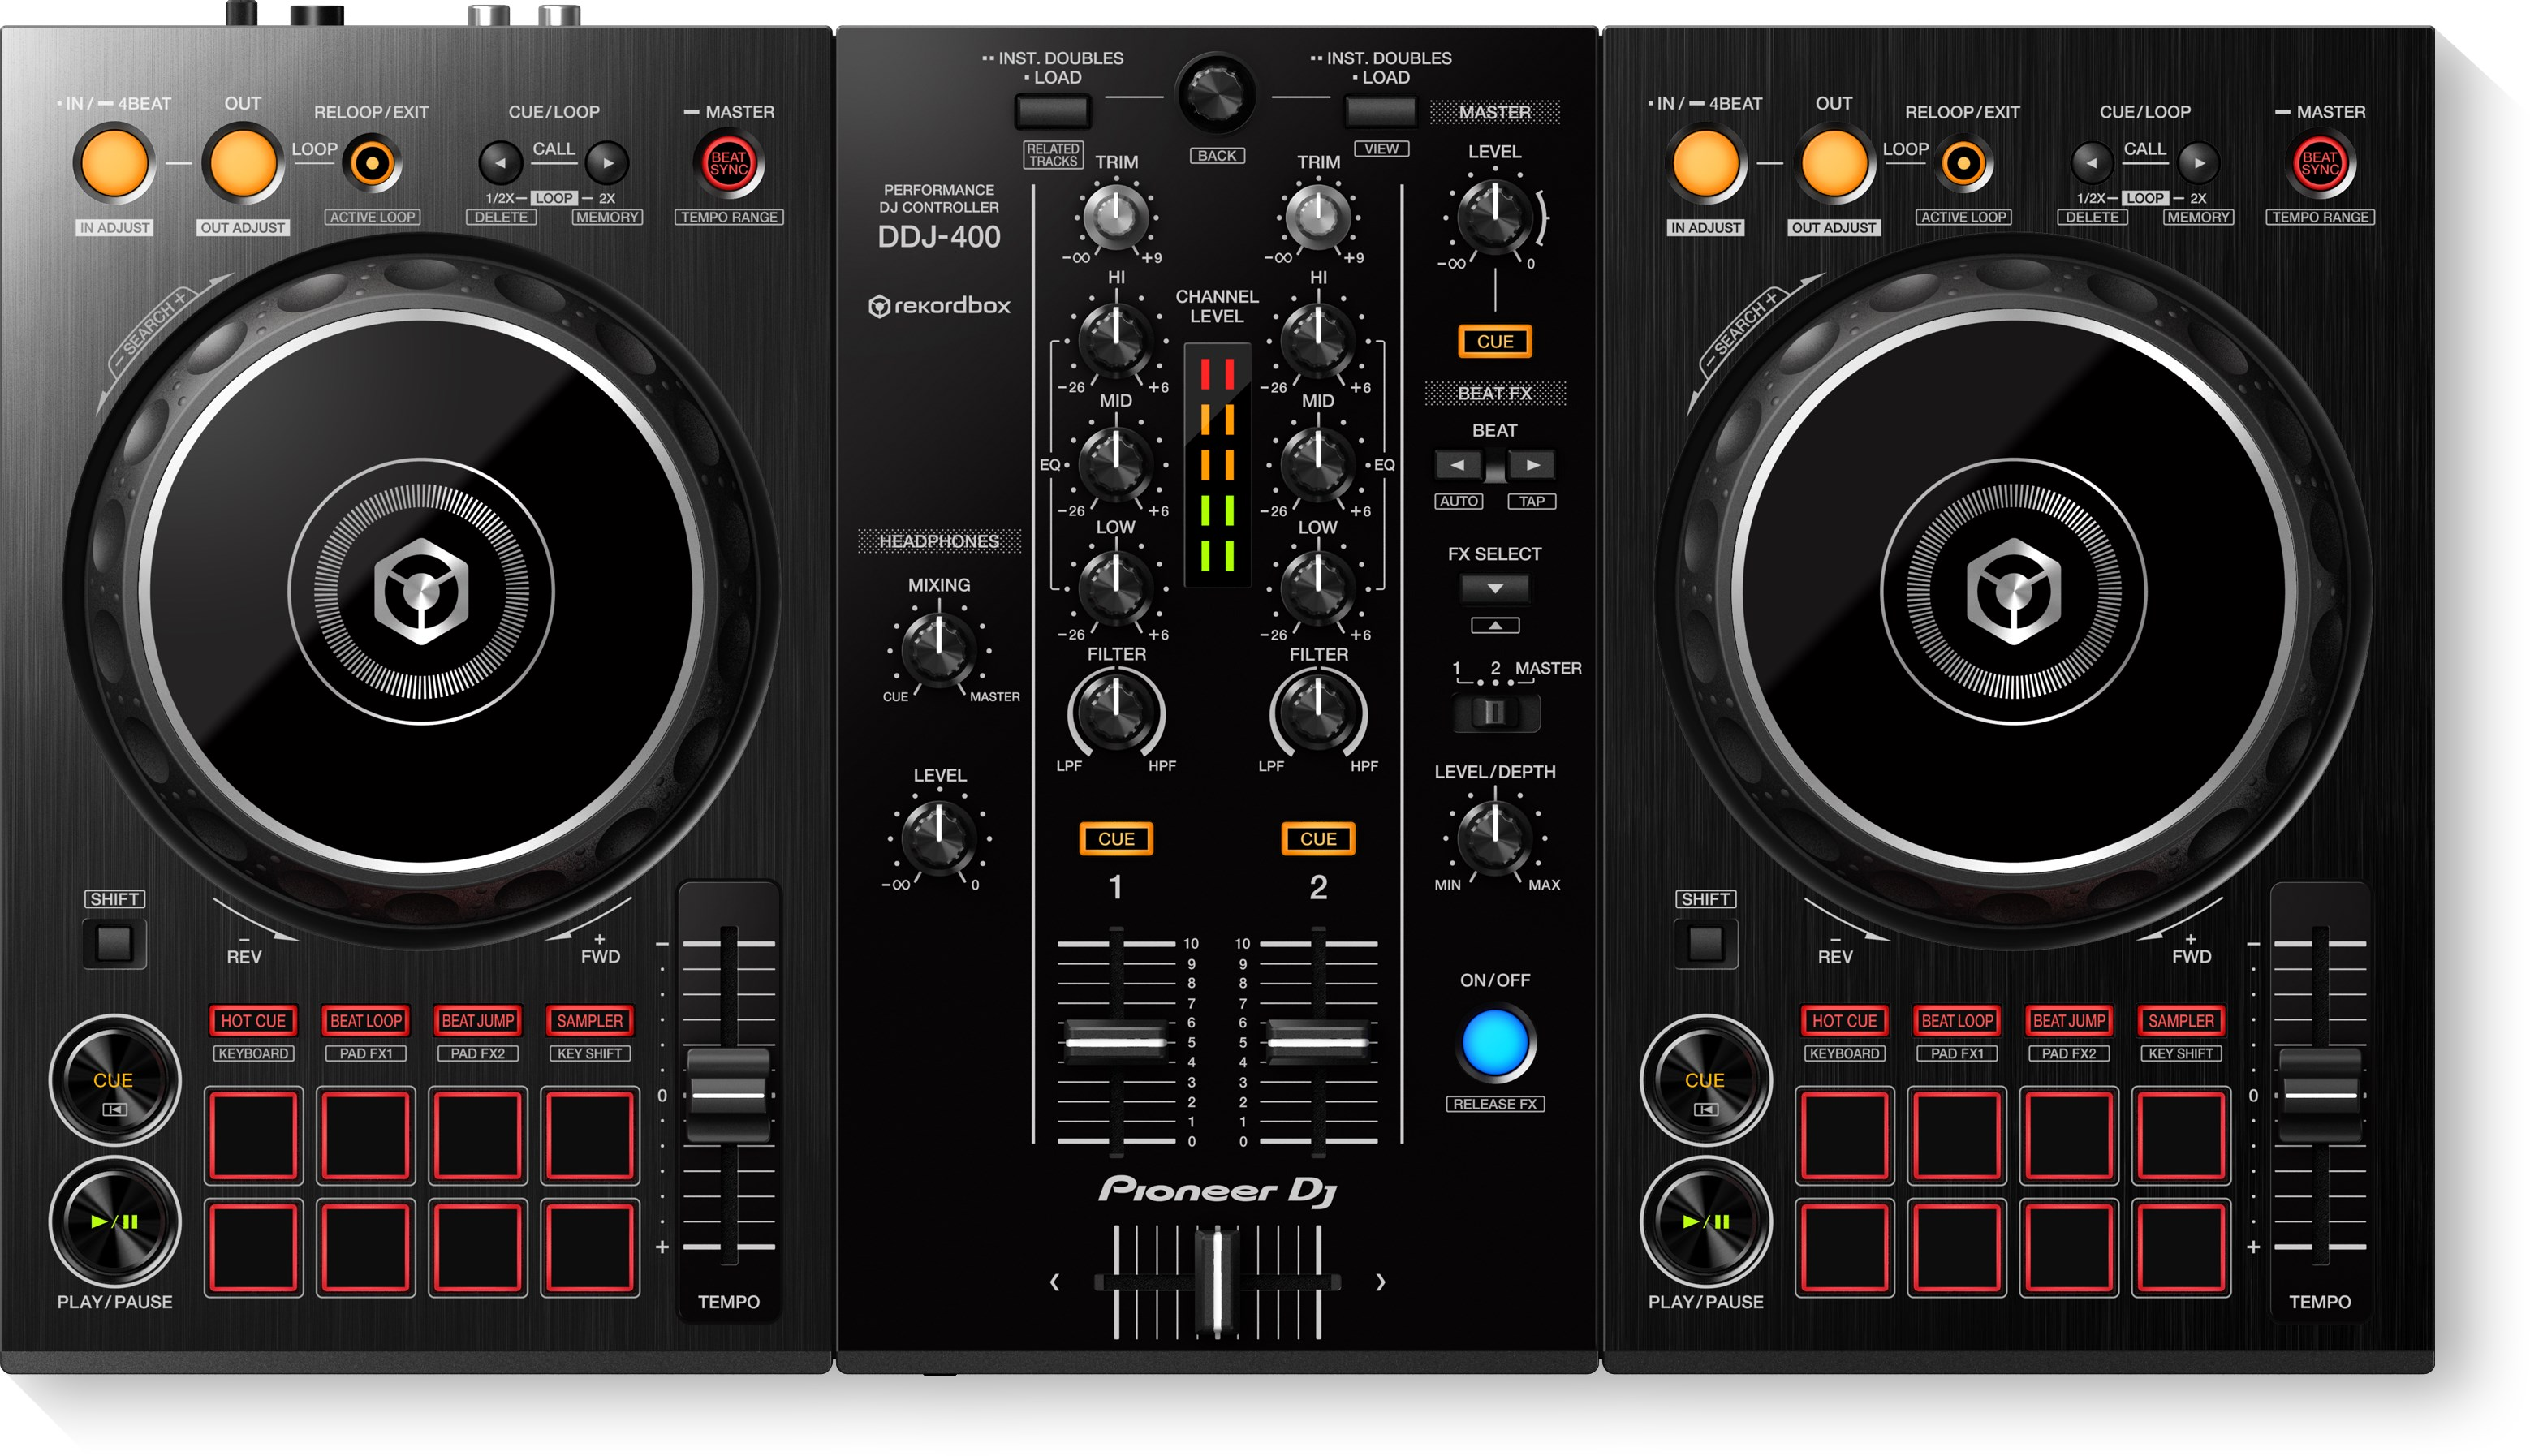 consolle pioneer ddj-400